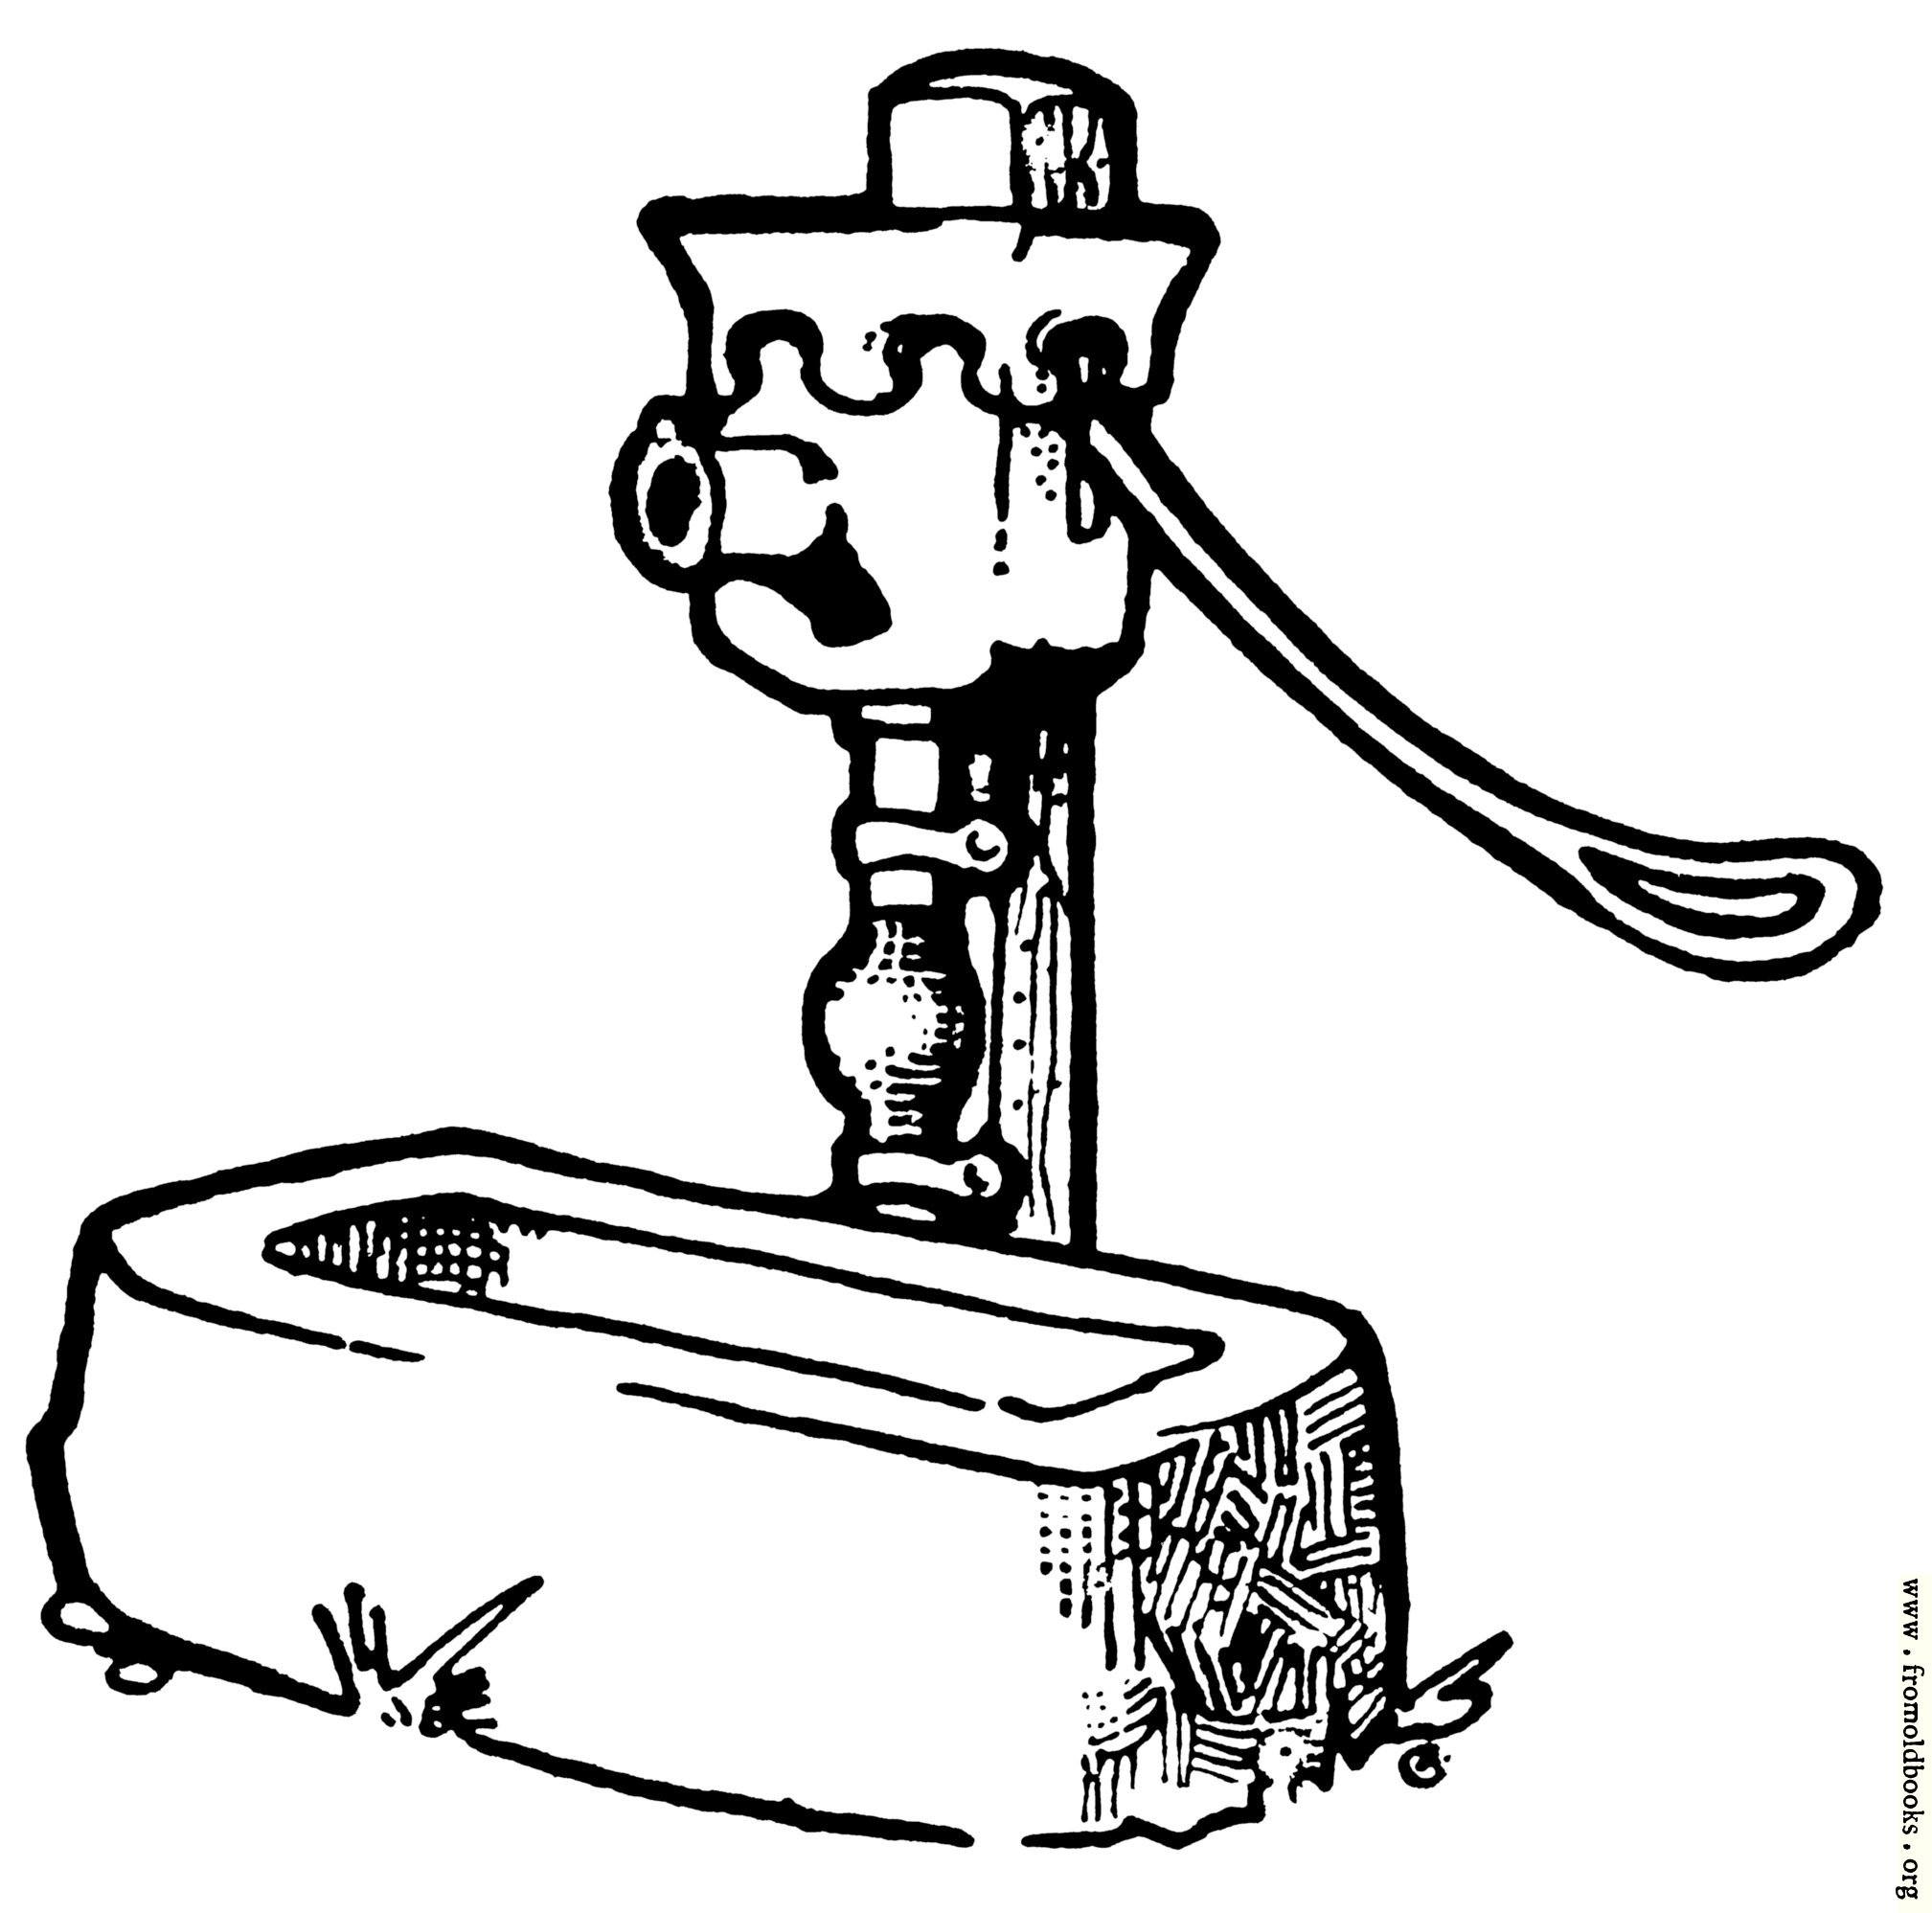 [Picture: Endpiece: well-pump with horse-trough]